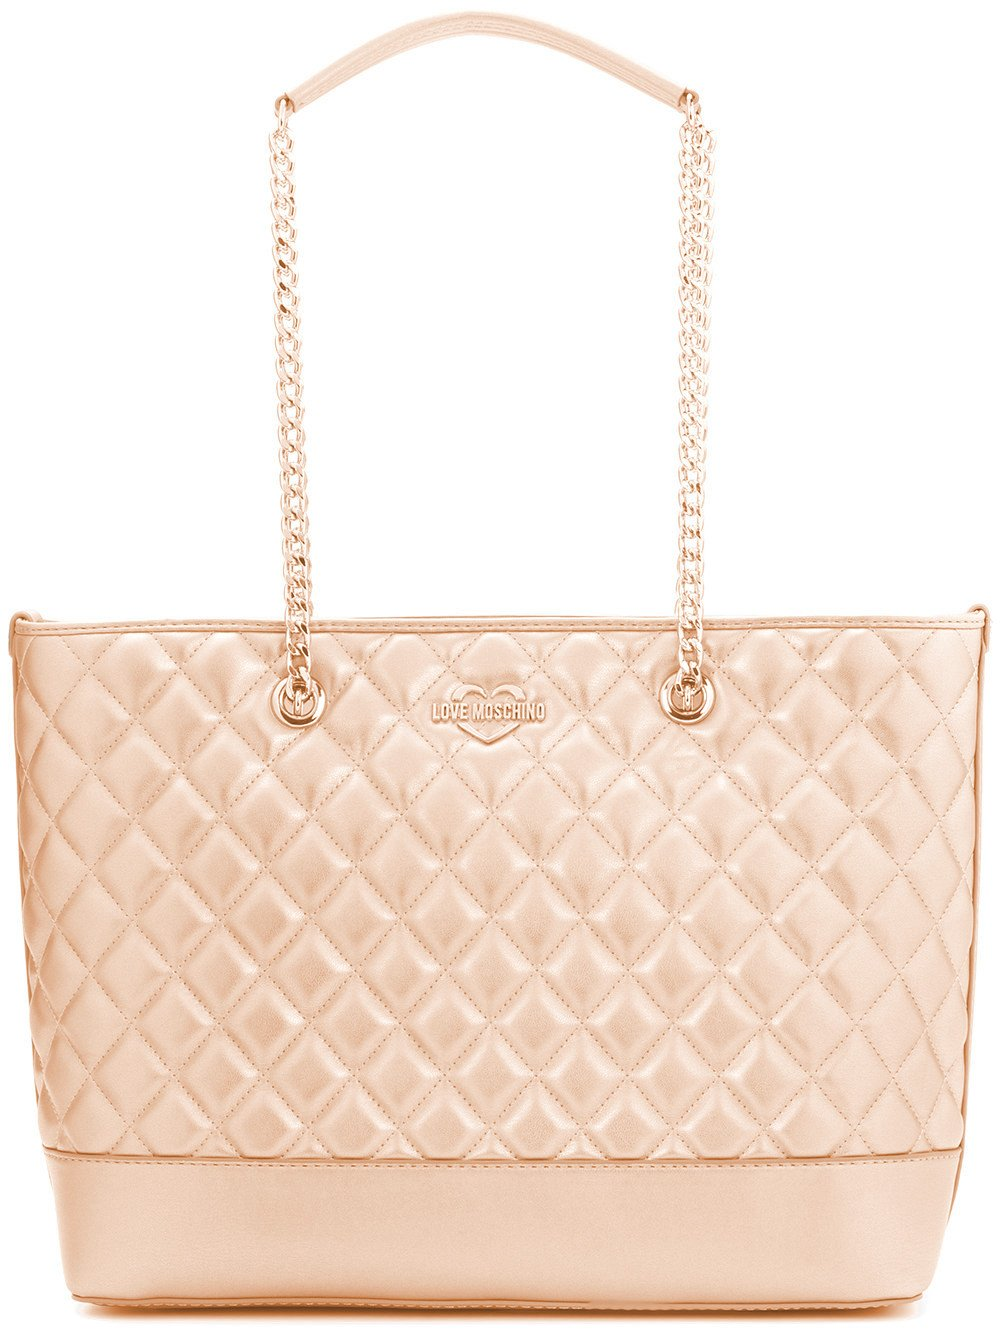 LOVE MOSCHINO Diamond Quilted Logo Shoulder Tote Bag, Rose Gold